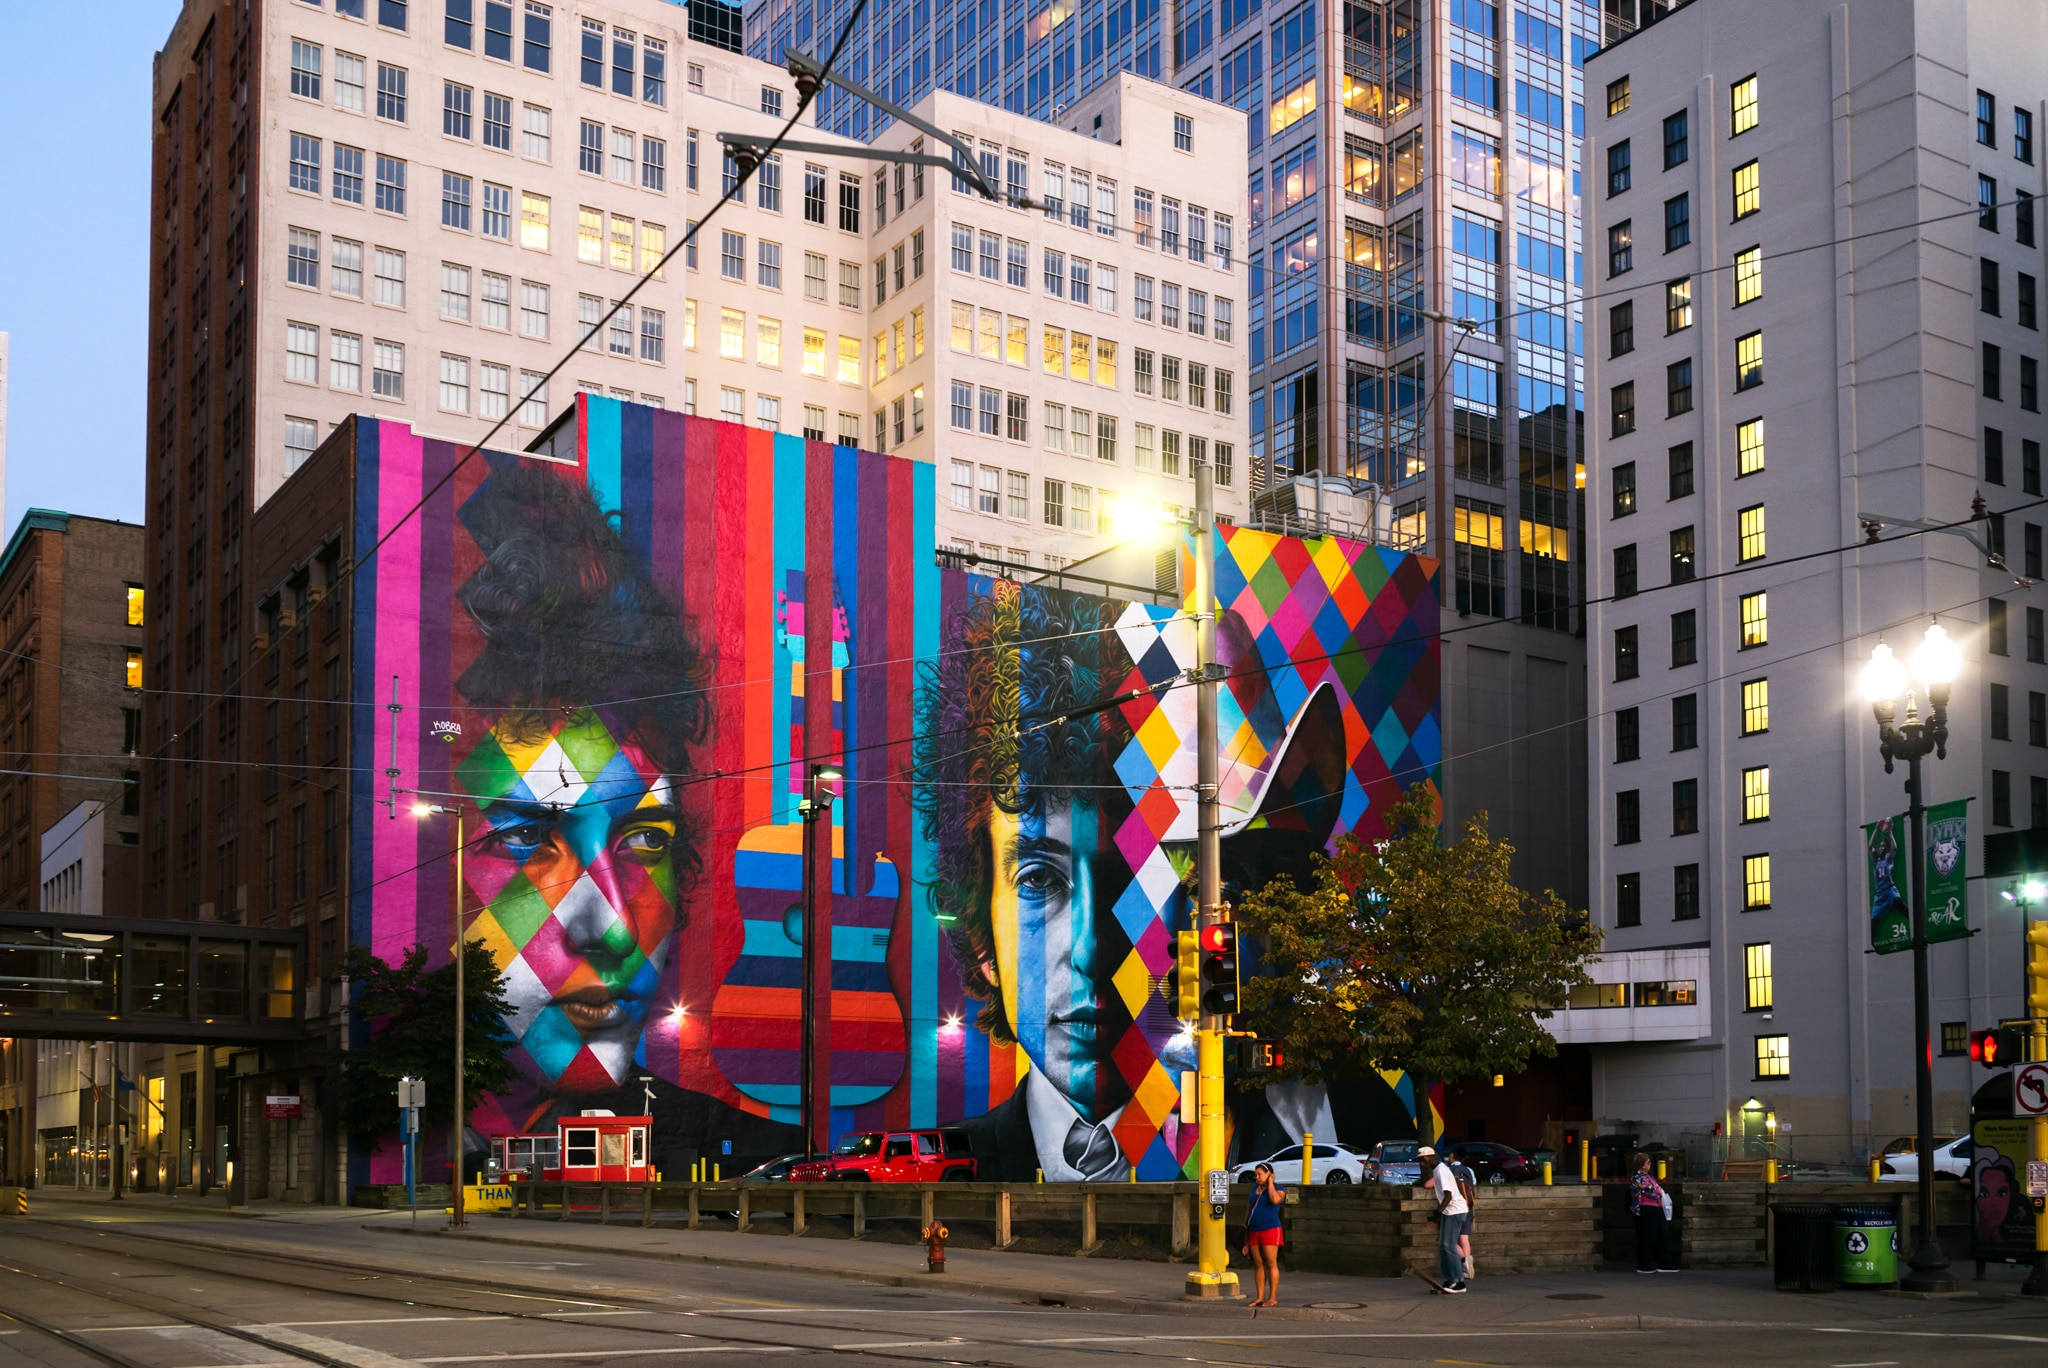 Tall buildings with colorful mural depicting Bob Dylan (© Design Pics Inc/National Geographic Creative)